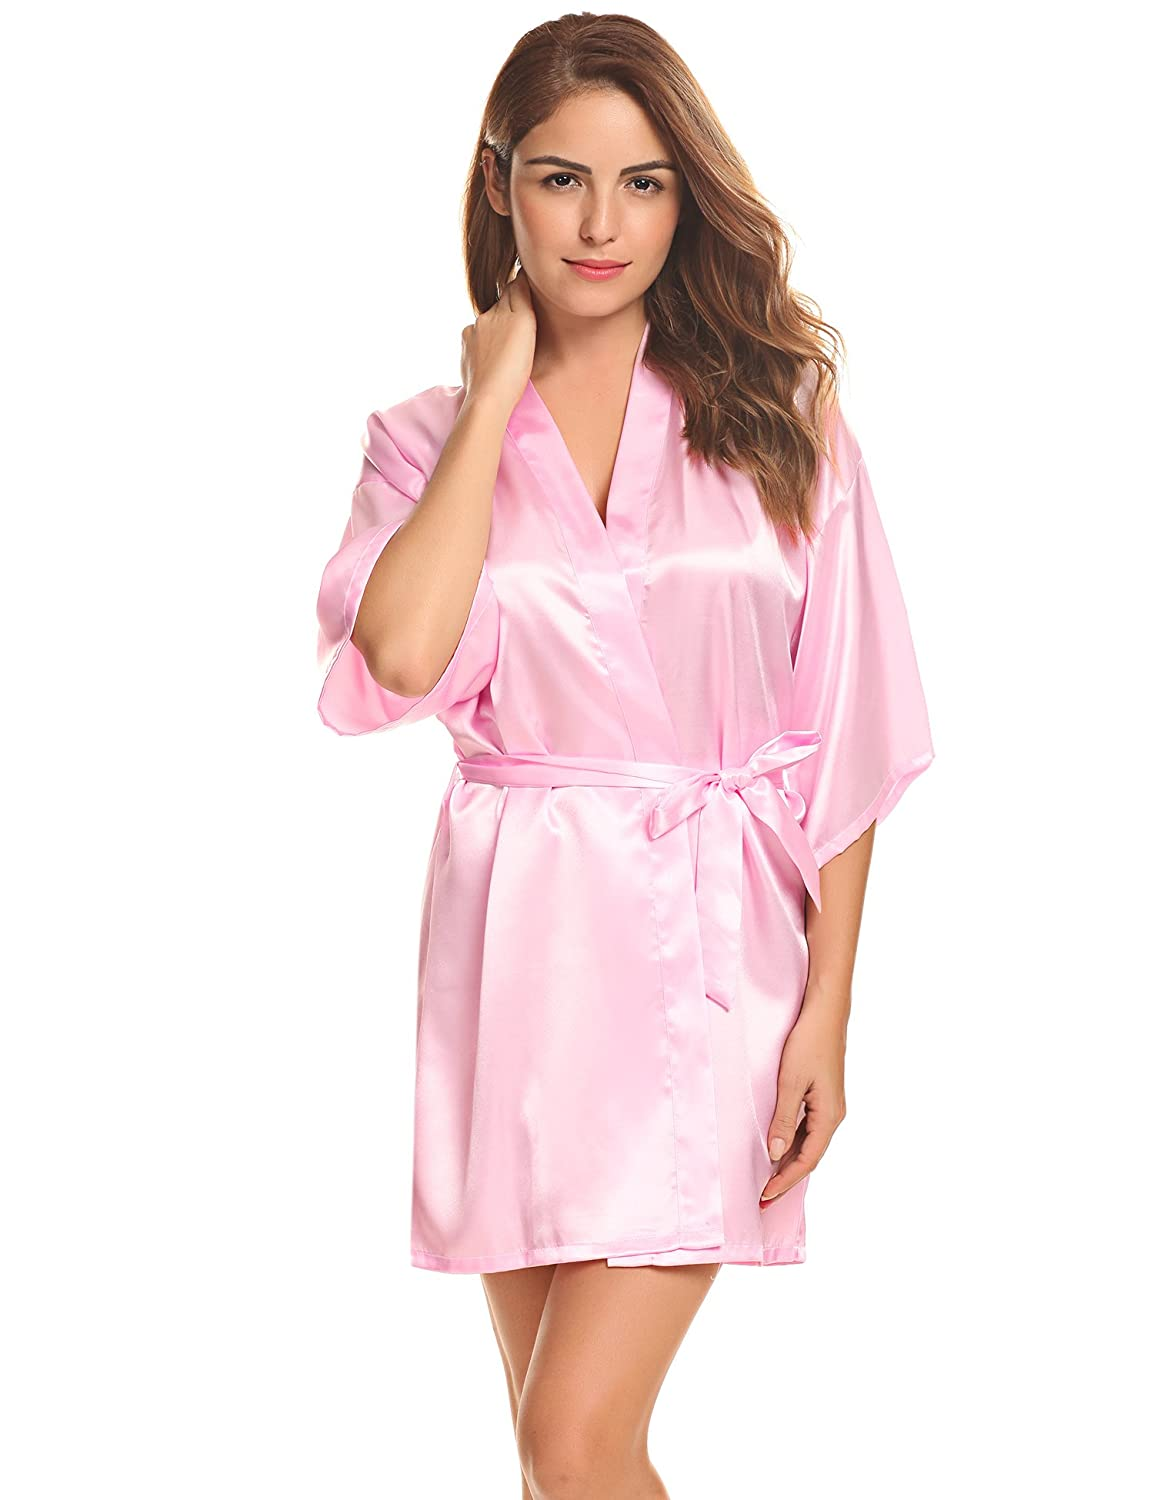 41a1c56c7a0 Women s Kimono Robes Satin Pure Colour Short Style with Oblique V-Neck Robe  at Amazon Women s Clothing store